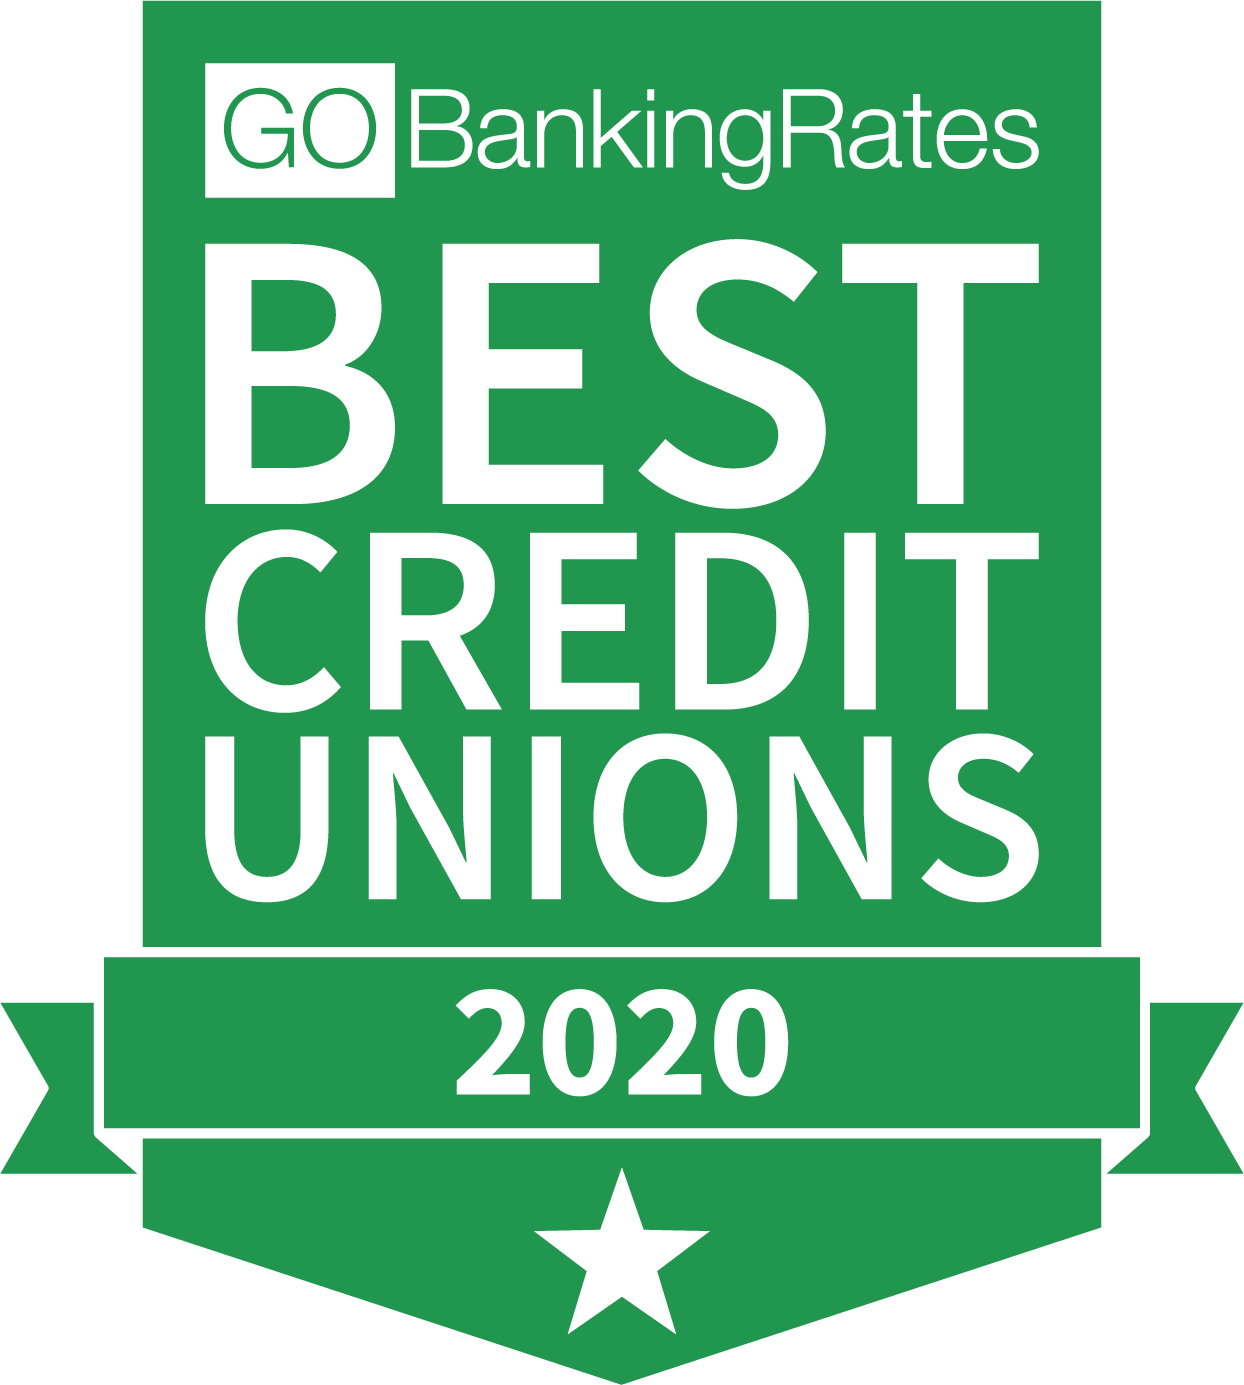 Best Credit Unions of 2020 - GoBankingRates